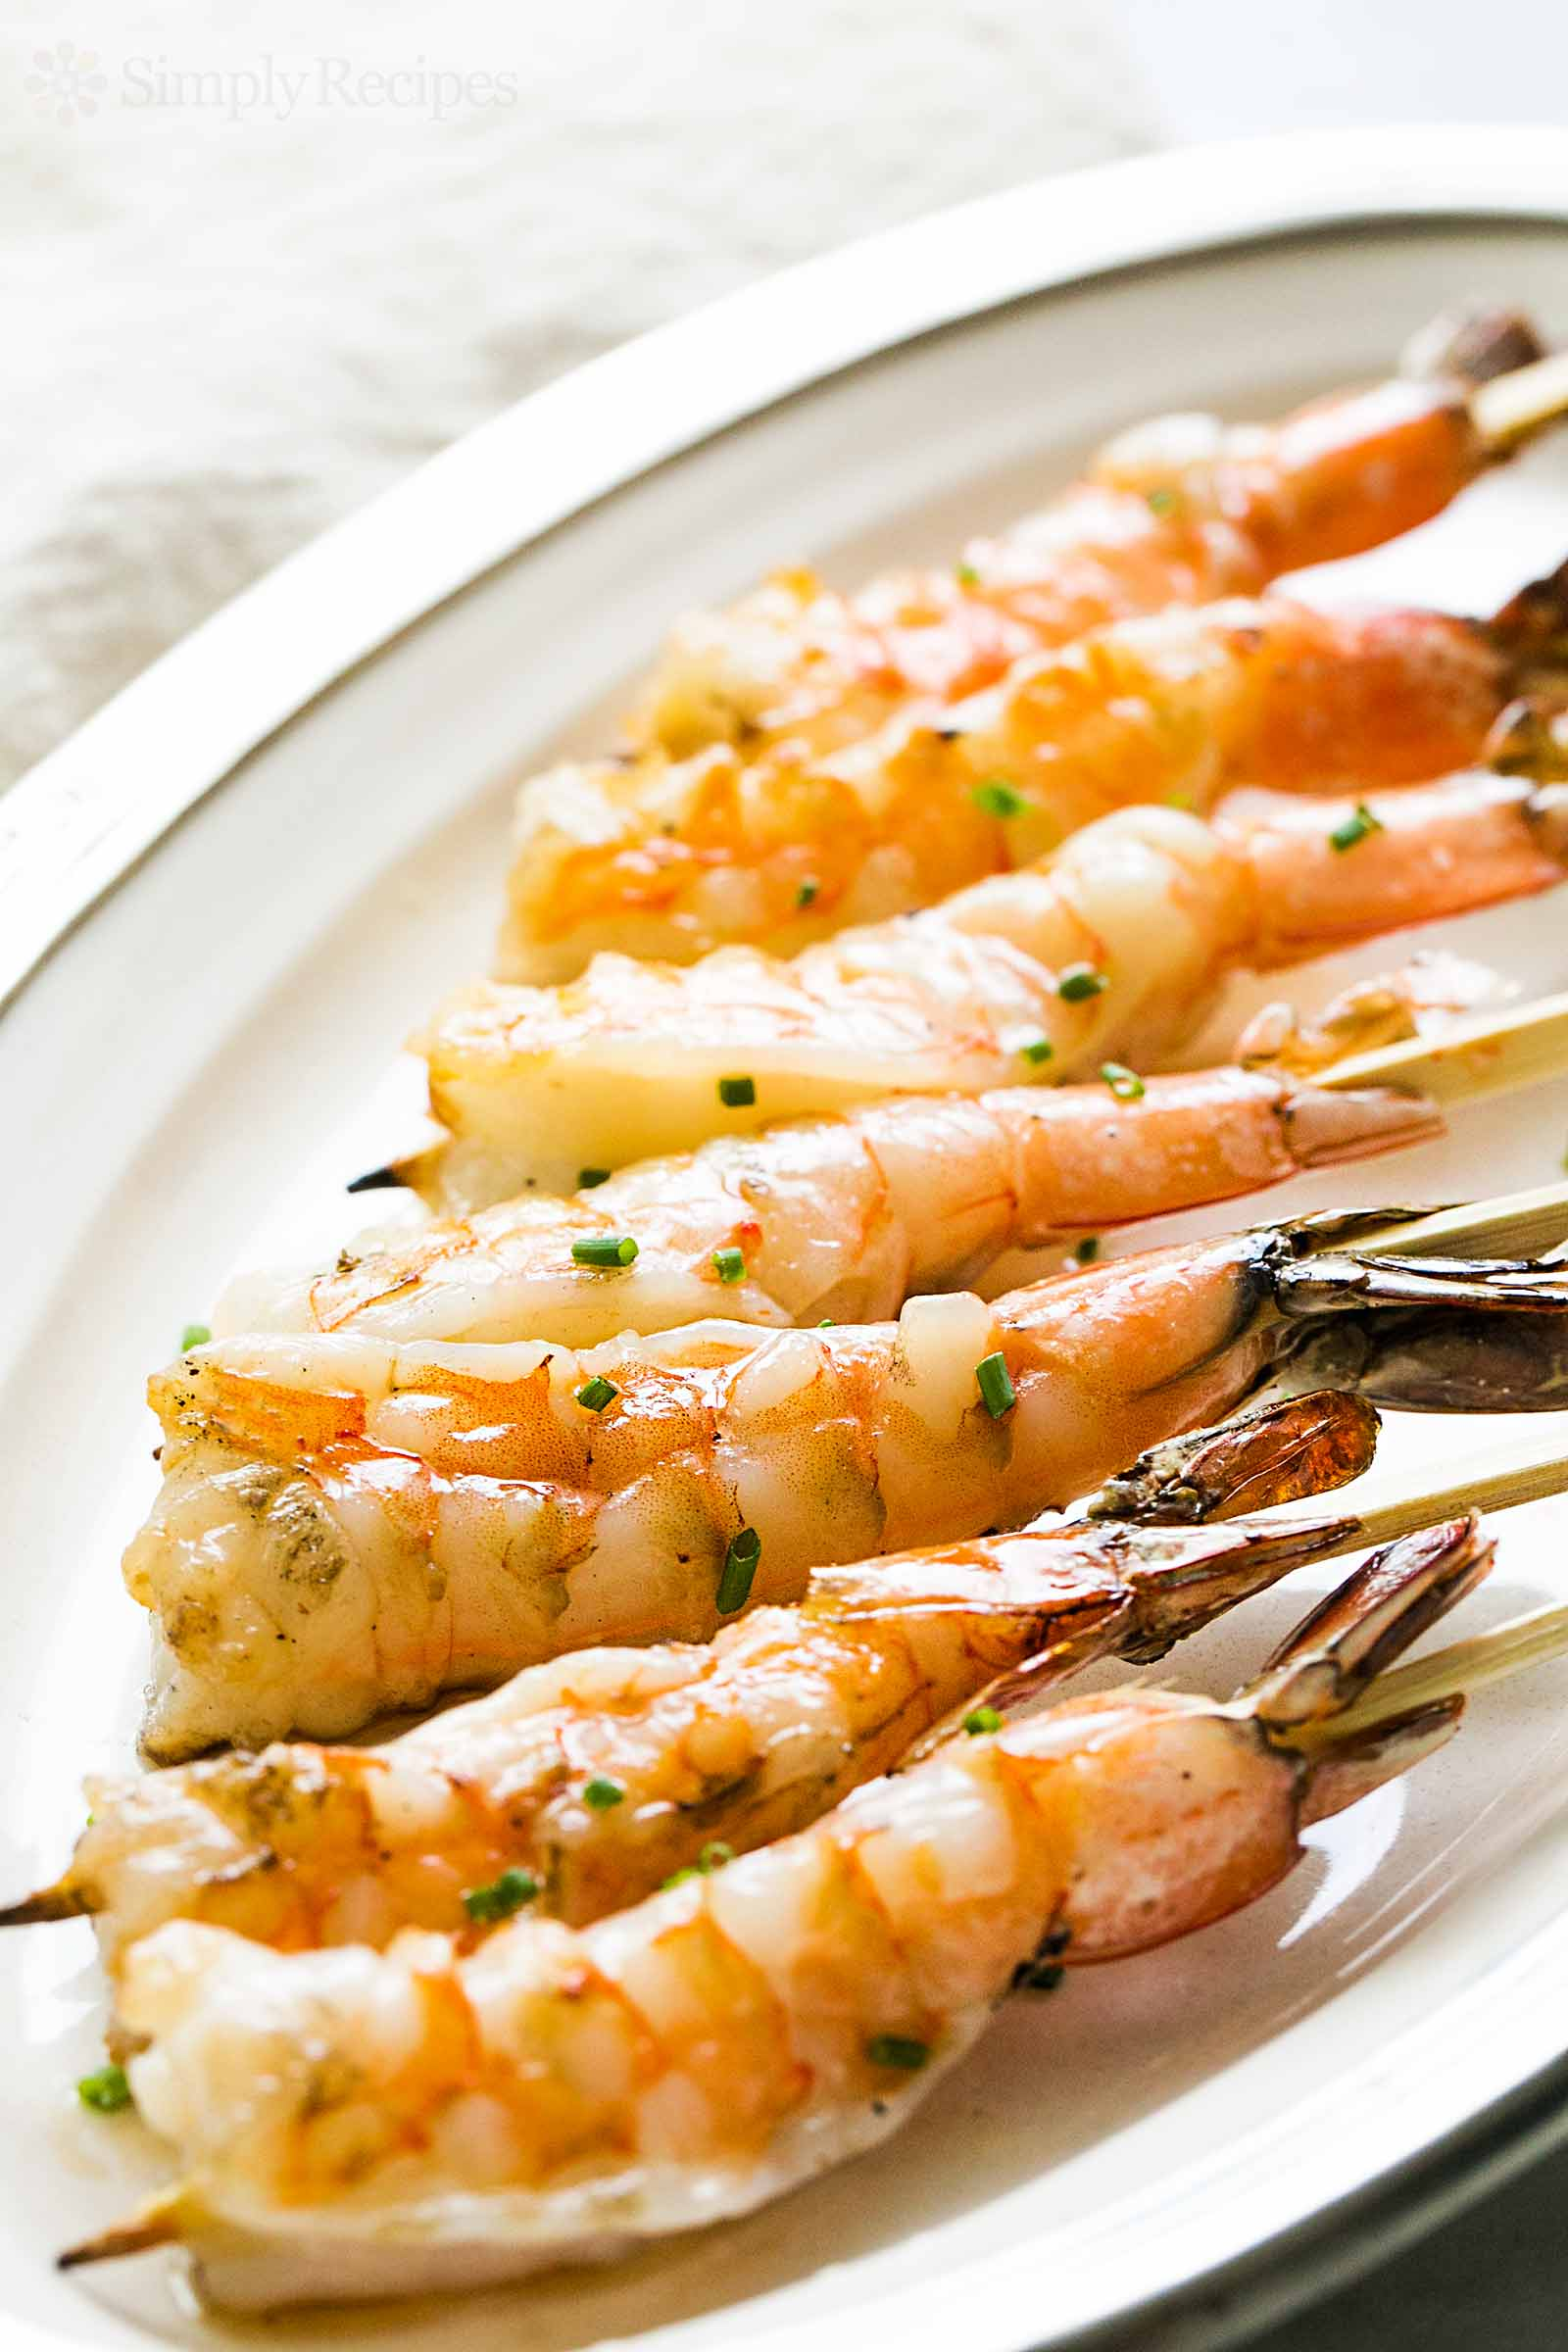 Grilled shrimp garlic skewers